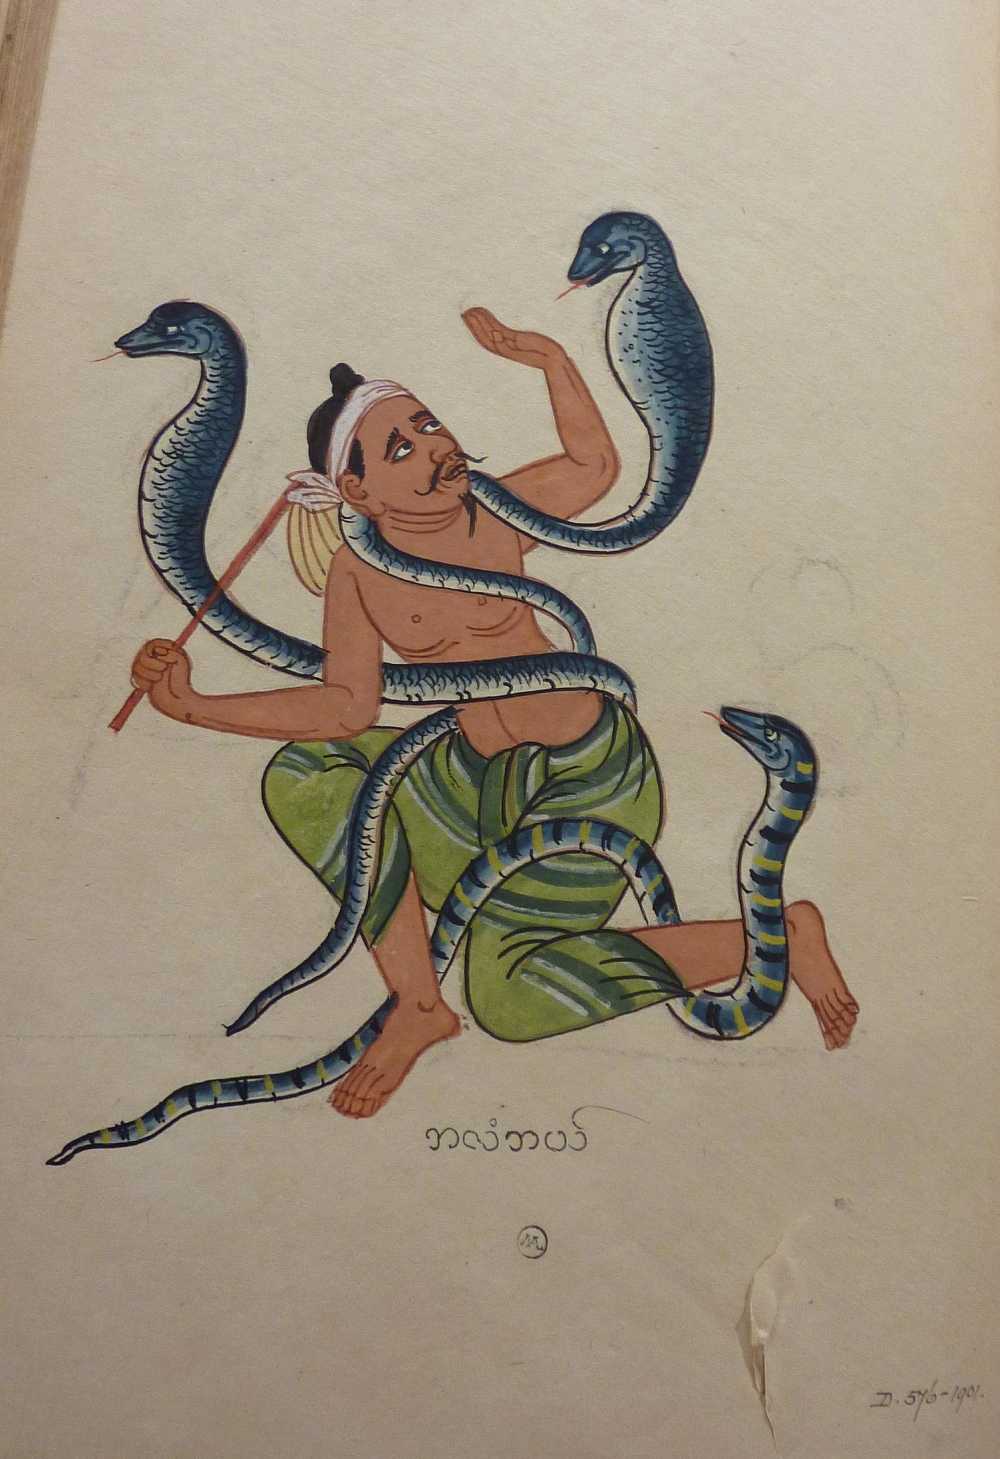 D.576-1901 Ulambé a snake player